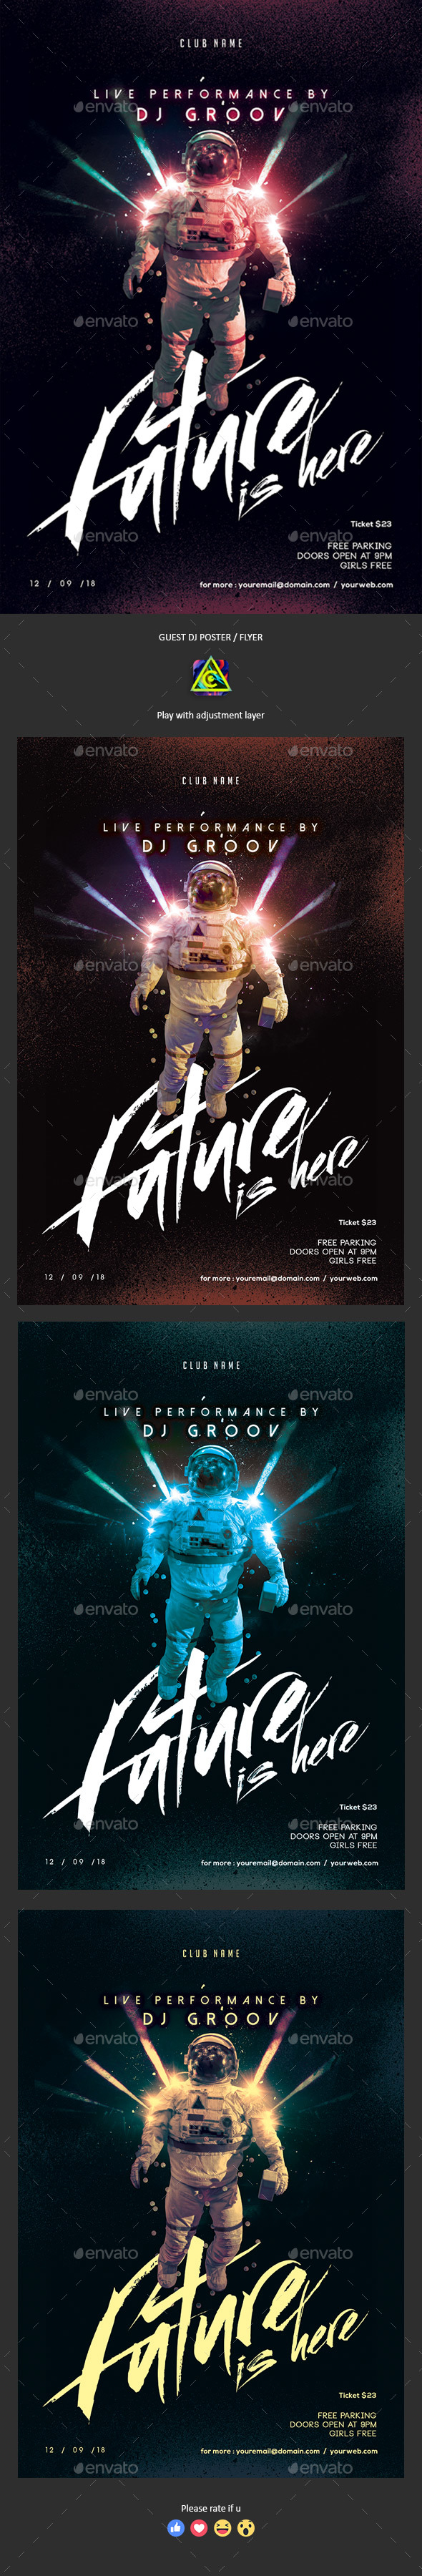 Future Is Here Poster / Flyer - Clubs & Parties Events